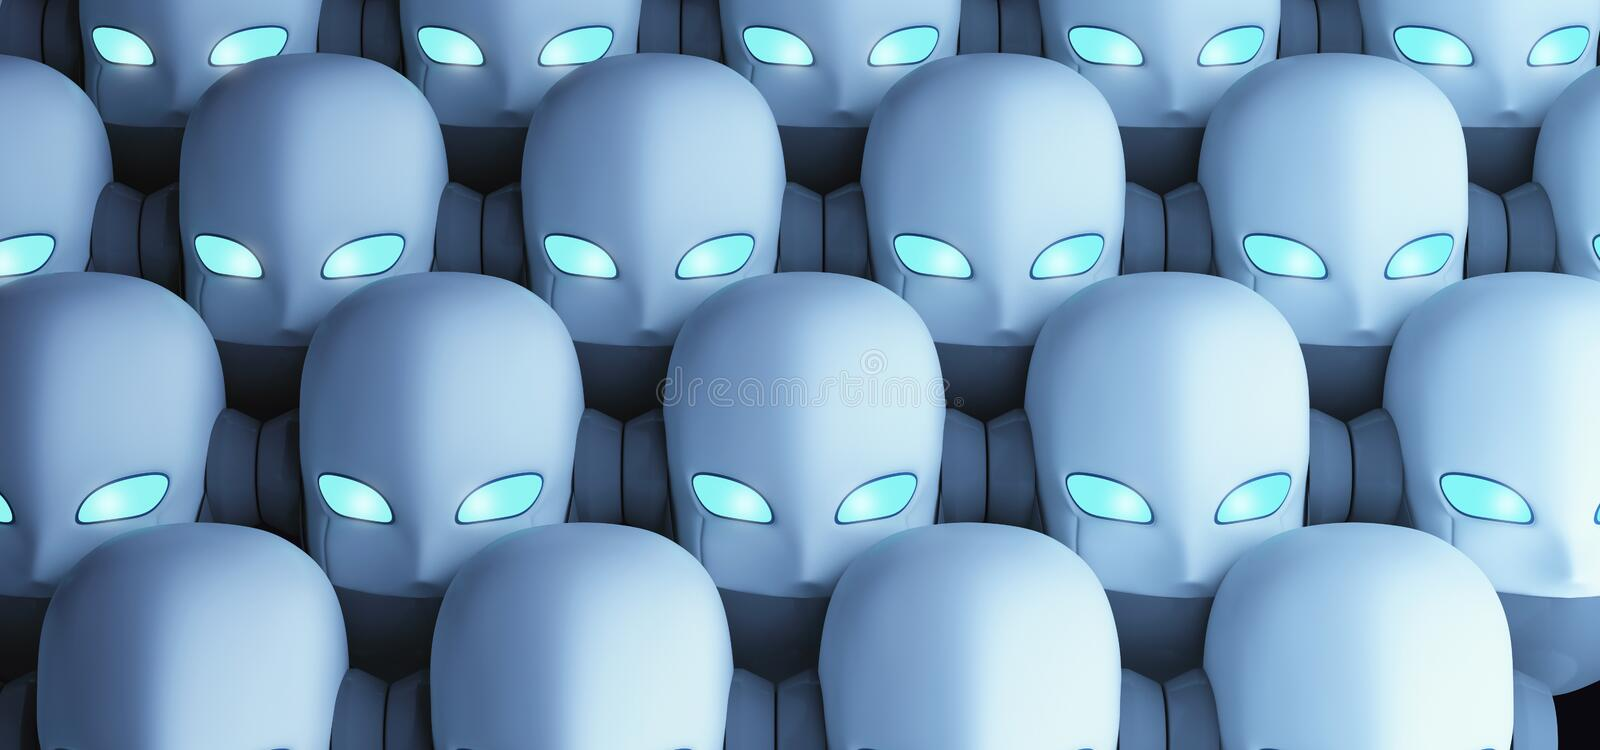 Group of robots, artificial intelligence vector illustration